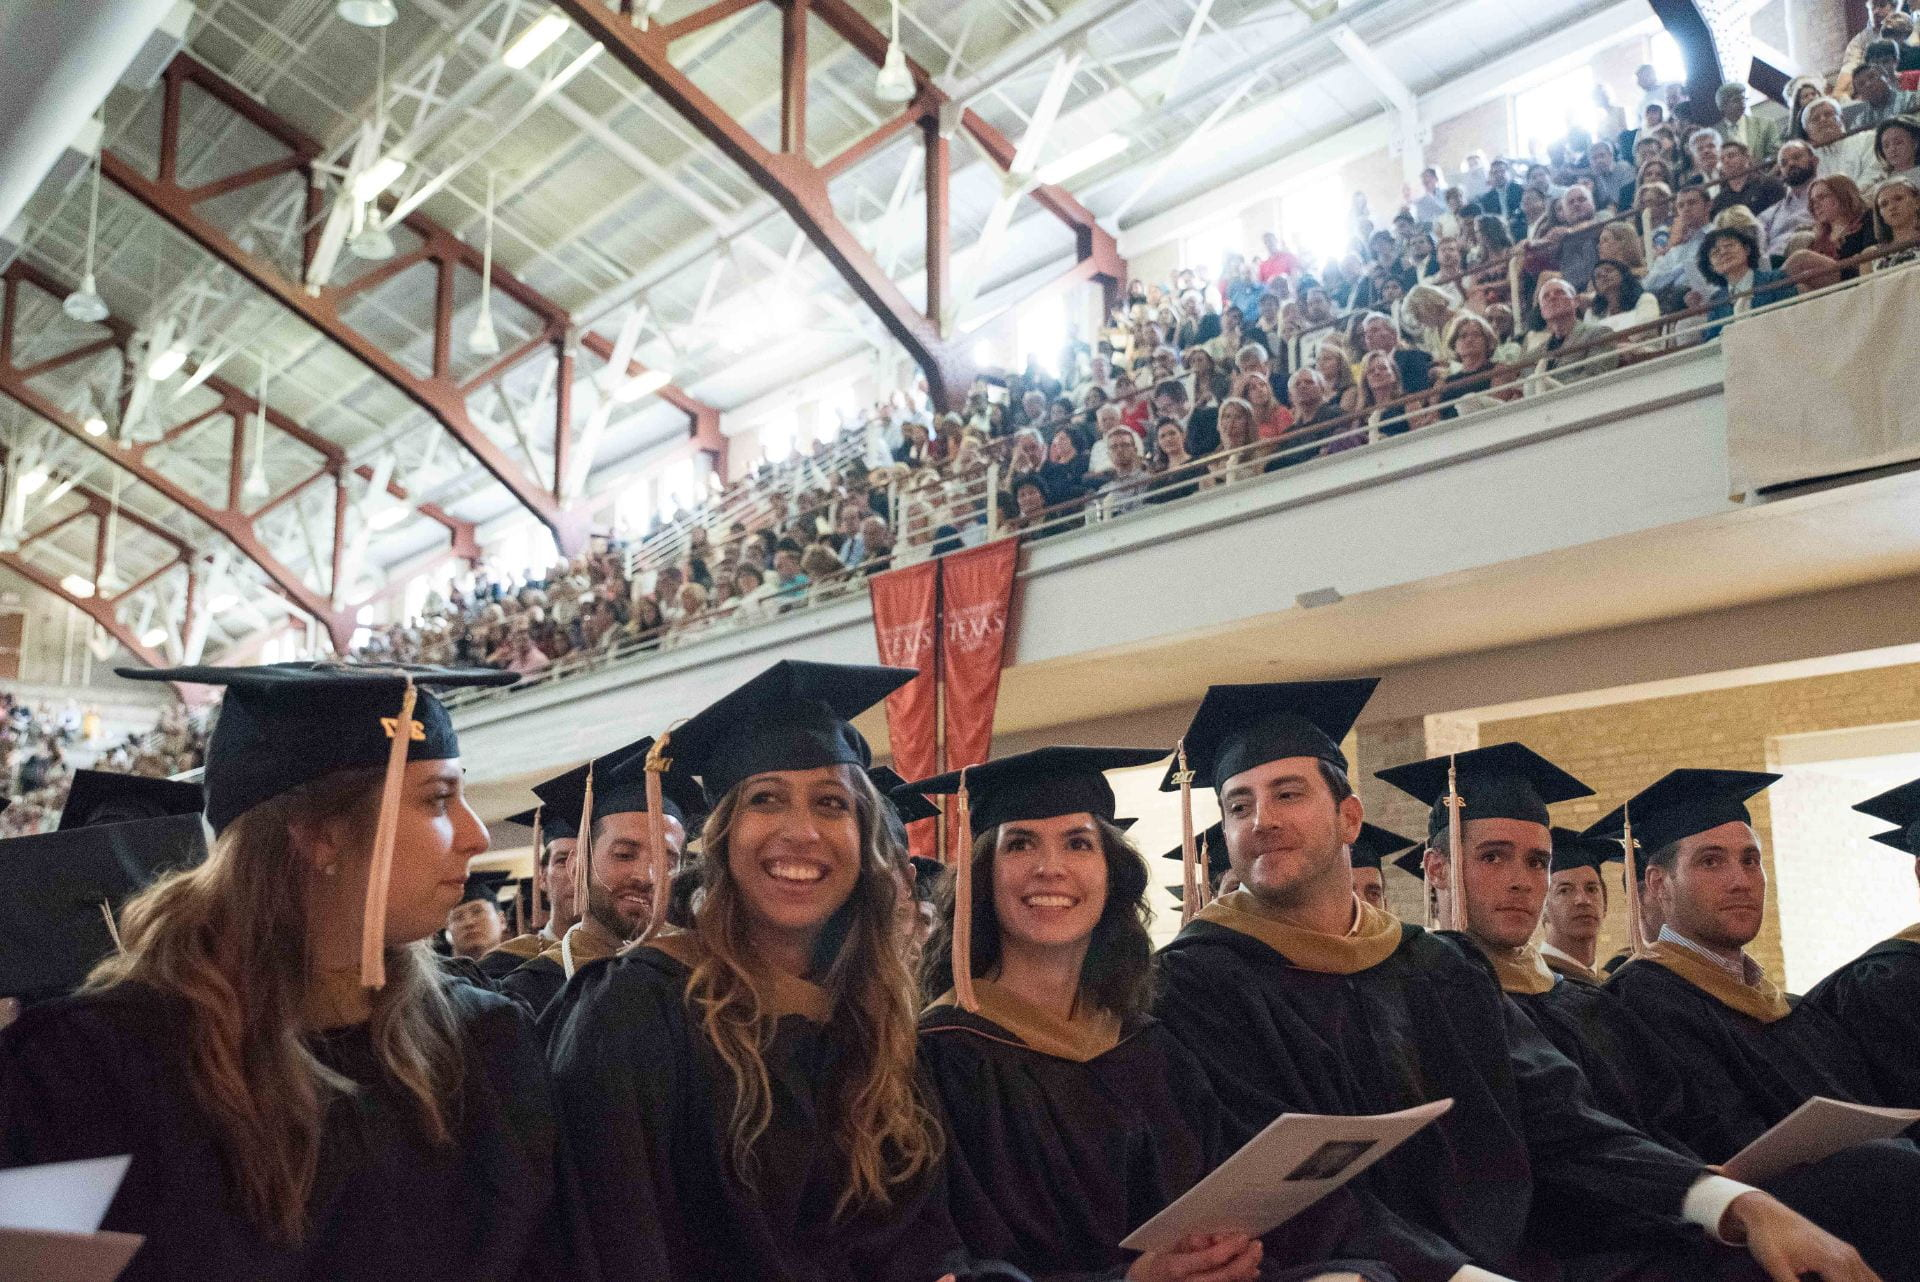 Master's candidates are presented with their degrees during a MBA graduation celebration at Gregory Gym on May 19, 2017. Photo by Lauren Gerson DeLeon.